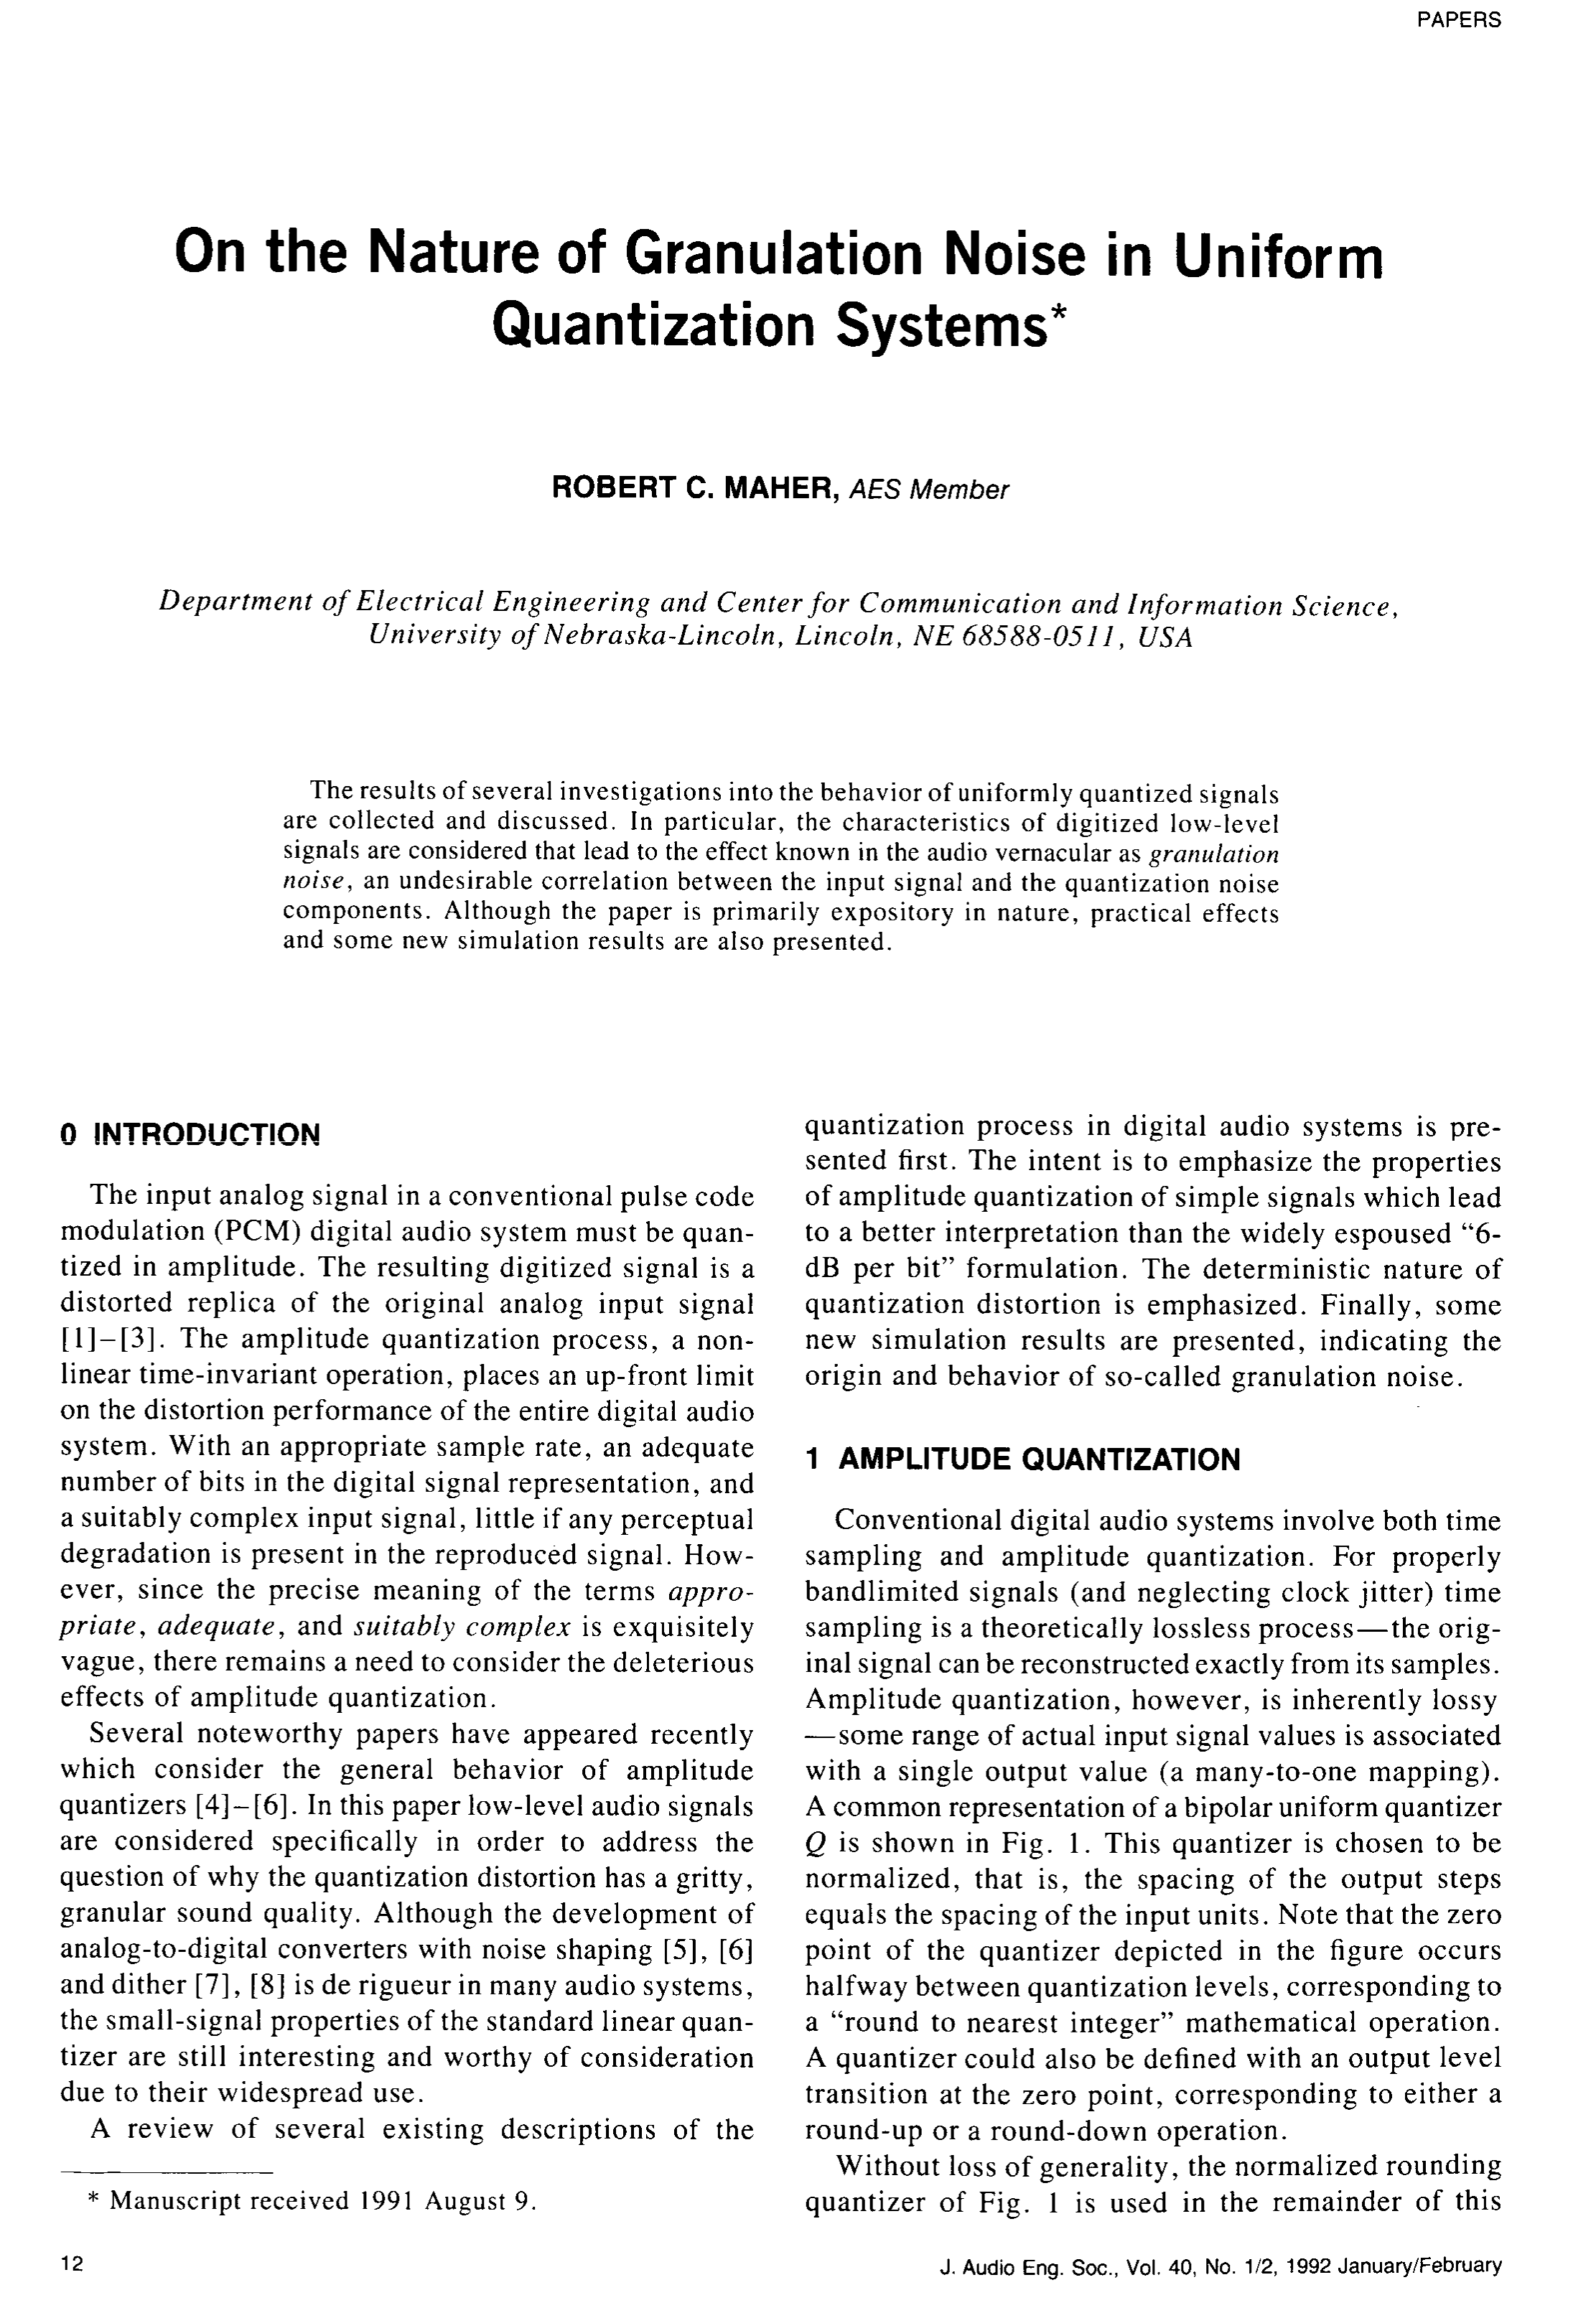 Aes Elibrary  On The Nature Of Granulation Noise In Uniform  Aes Elibrary  On The Nature Of Granulation Noise In Uniform Quantization  Systems High School Admissions Essay also Custom Writings  Business Plan Writers Mn